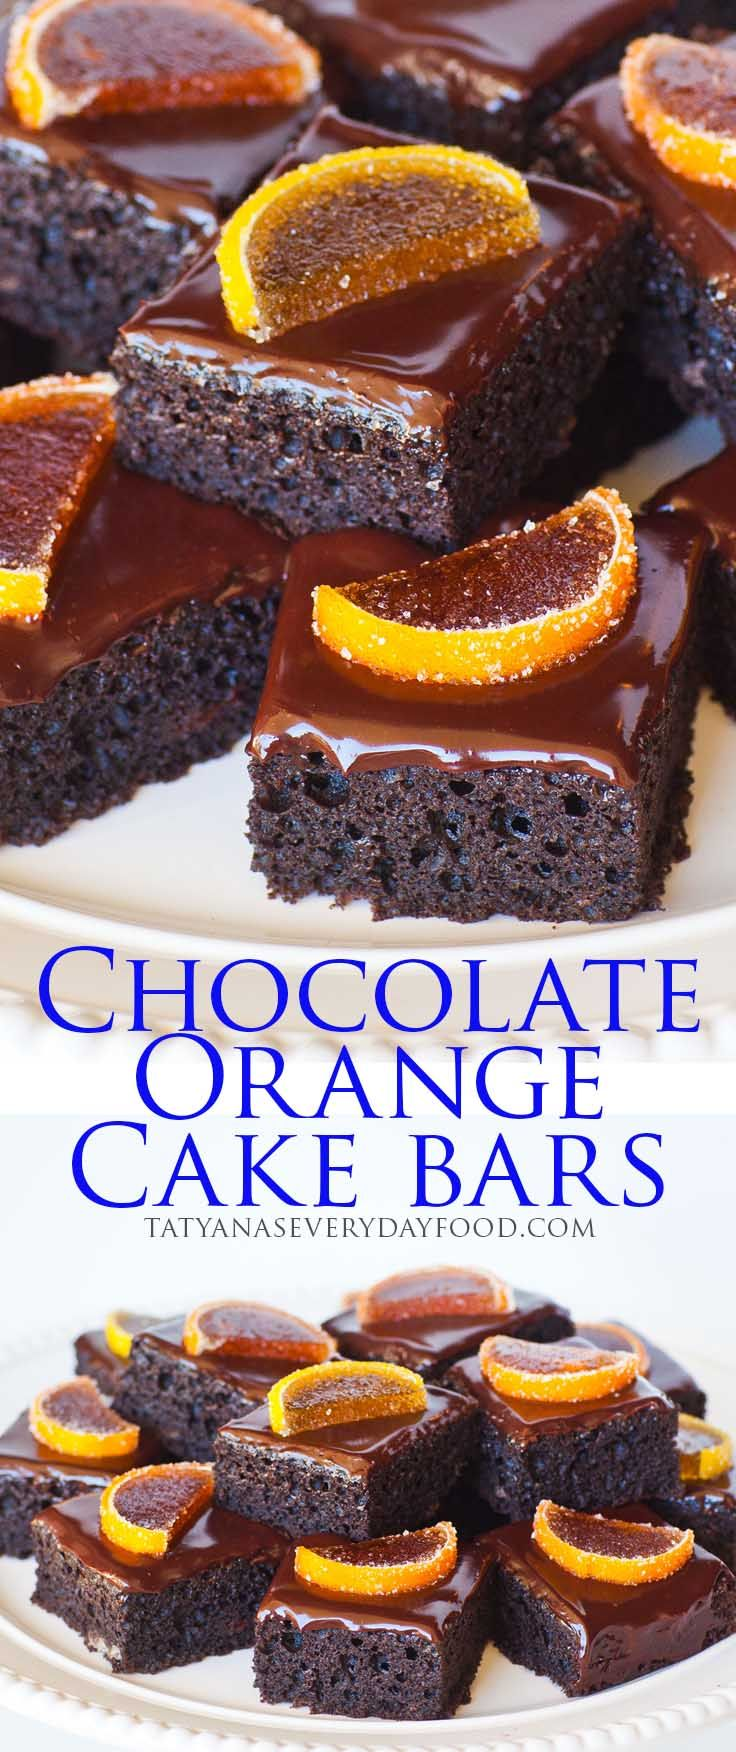 Dessert doesn't have to be intimidating or complicated! These super easy chocolate orange cake bars are made with orange marmalade and topped with a simple chocolate ganache! These little bars pack a ton of chocolate and orange flavor and they're a great way to finish any meal! Watch my video recipe below for all the […]